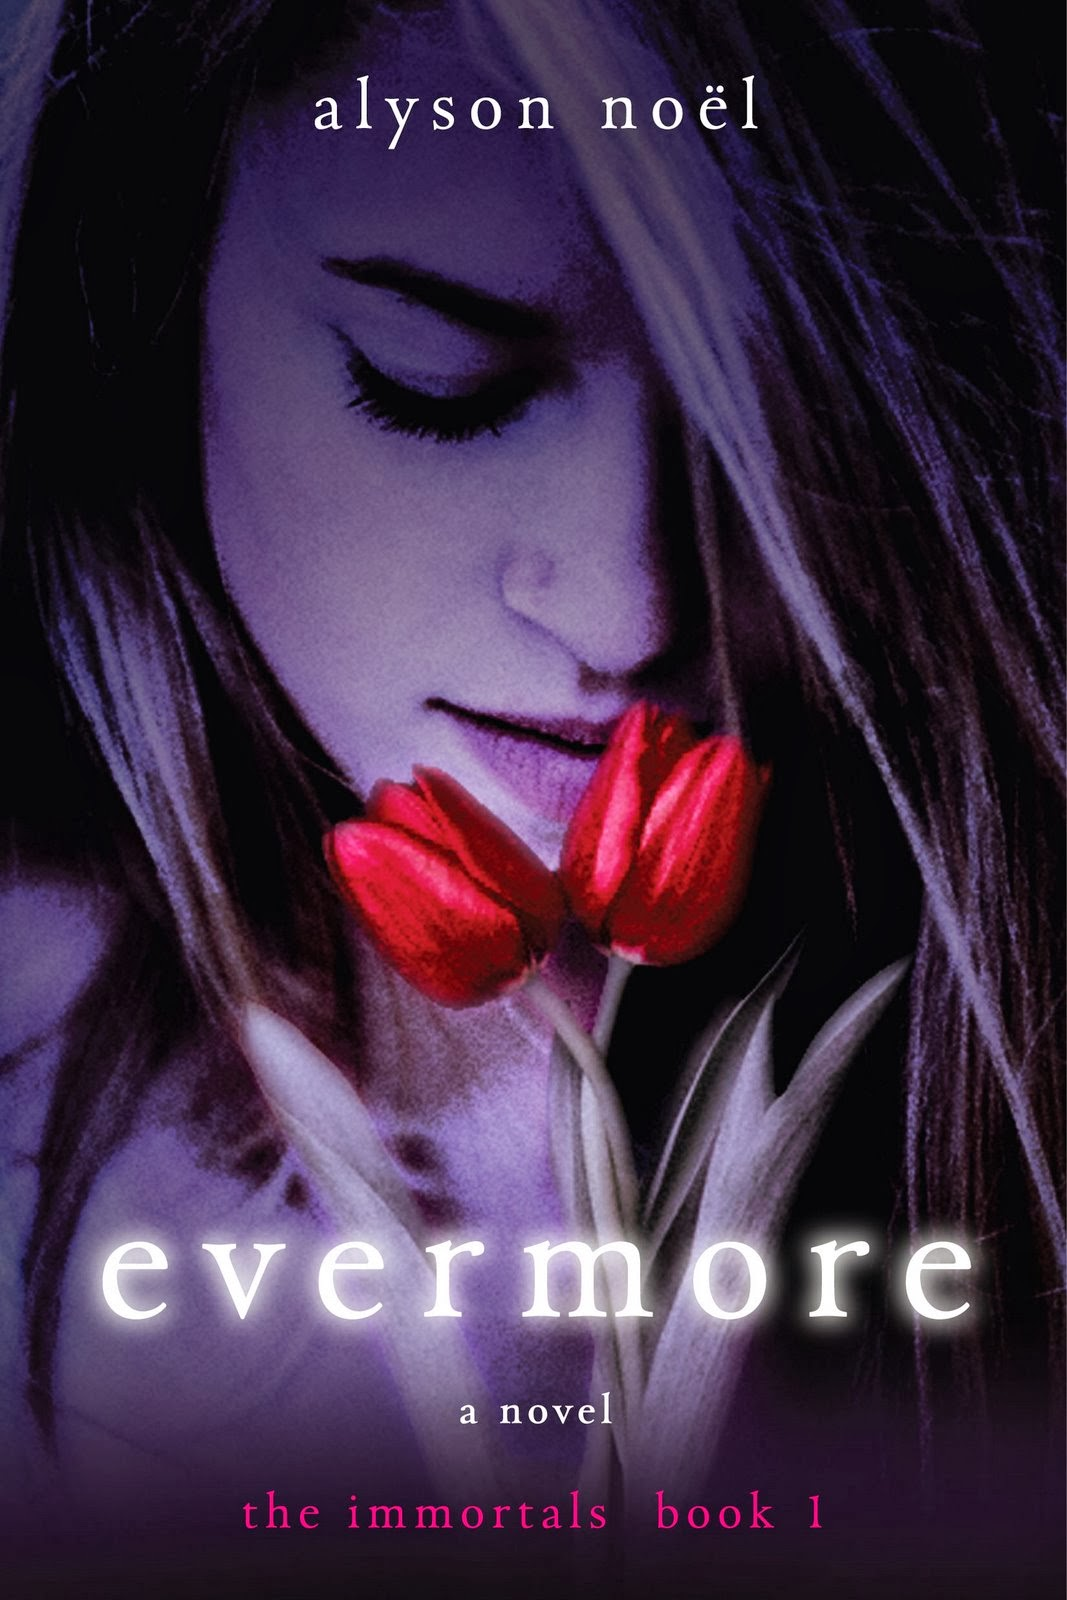 Evermore an enchanting mystical novel by Alyson Noel